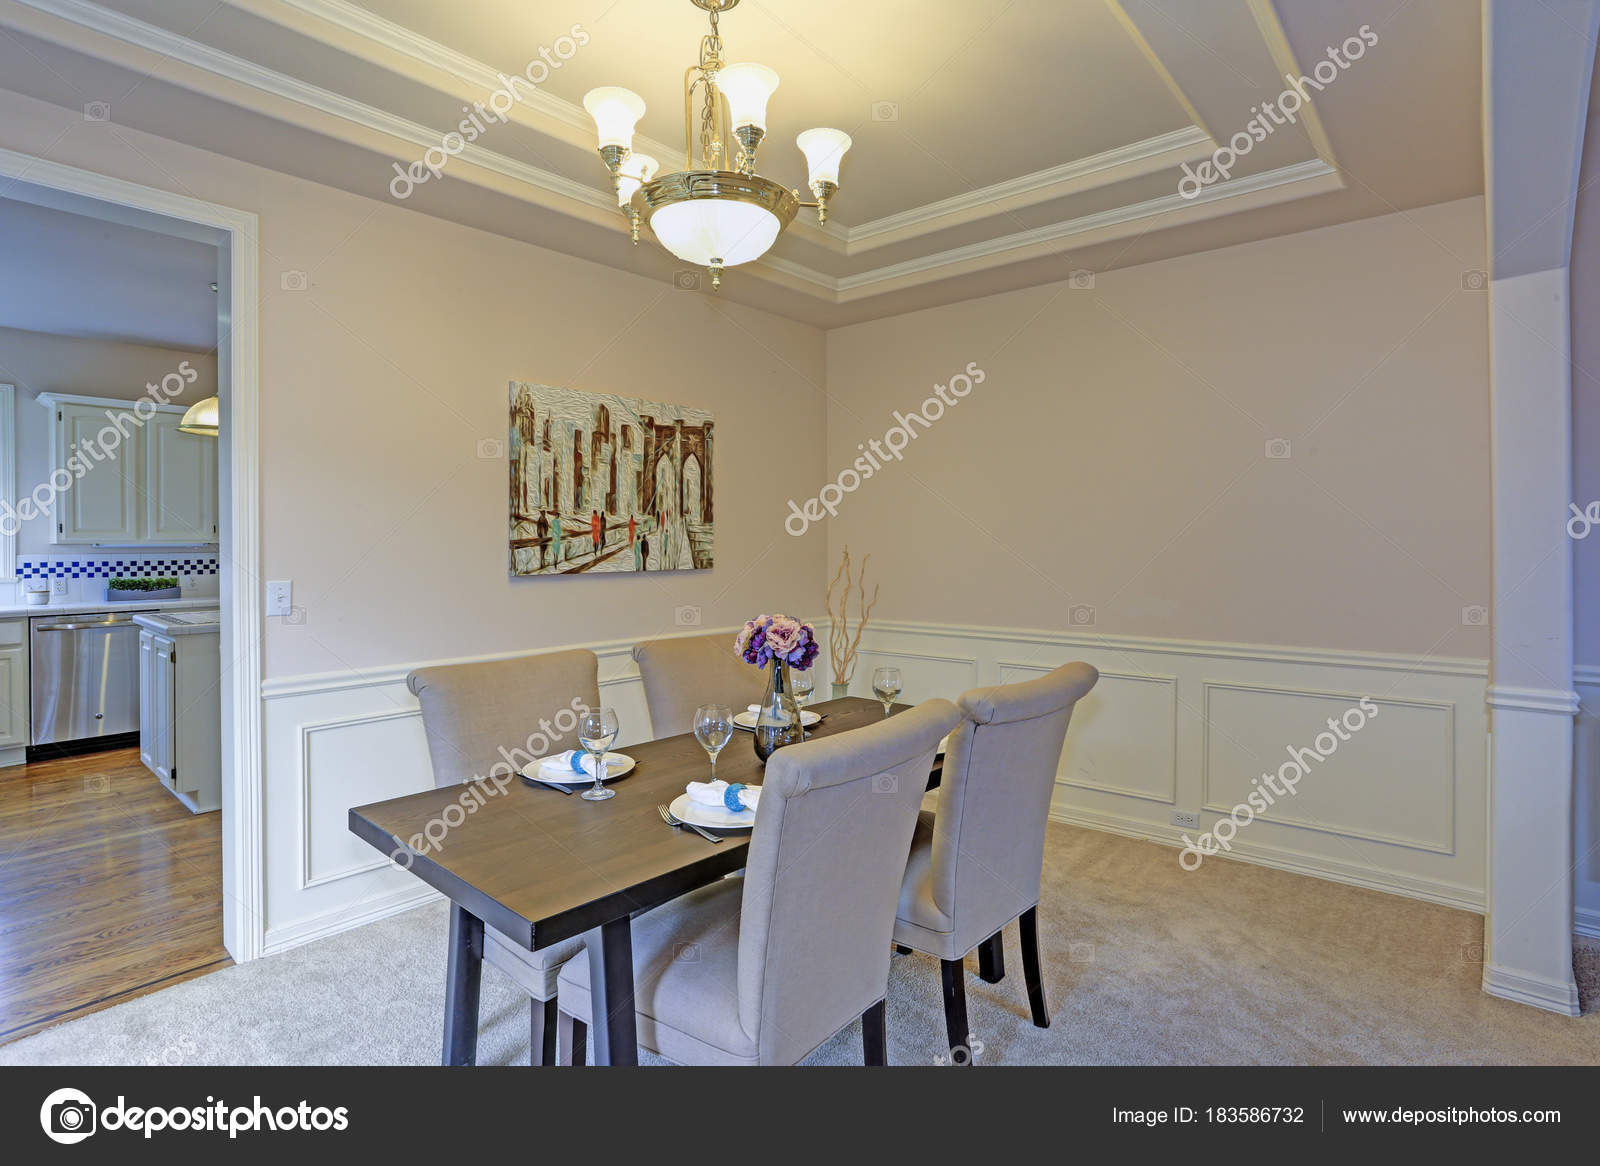 Chic Dining Room Accented With Wall Panel Mouldings And Tray Ceiling.